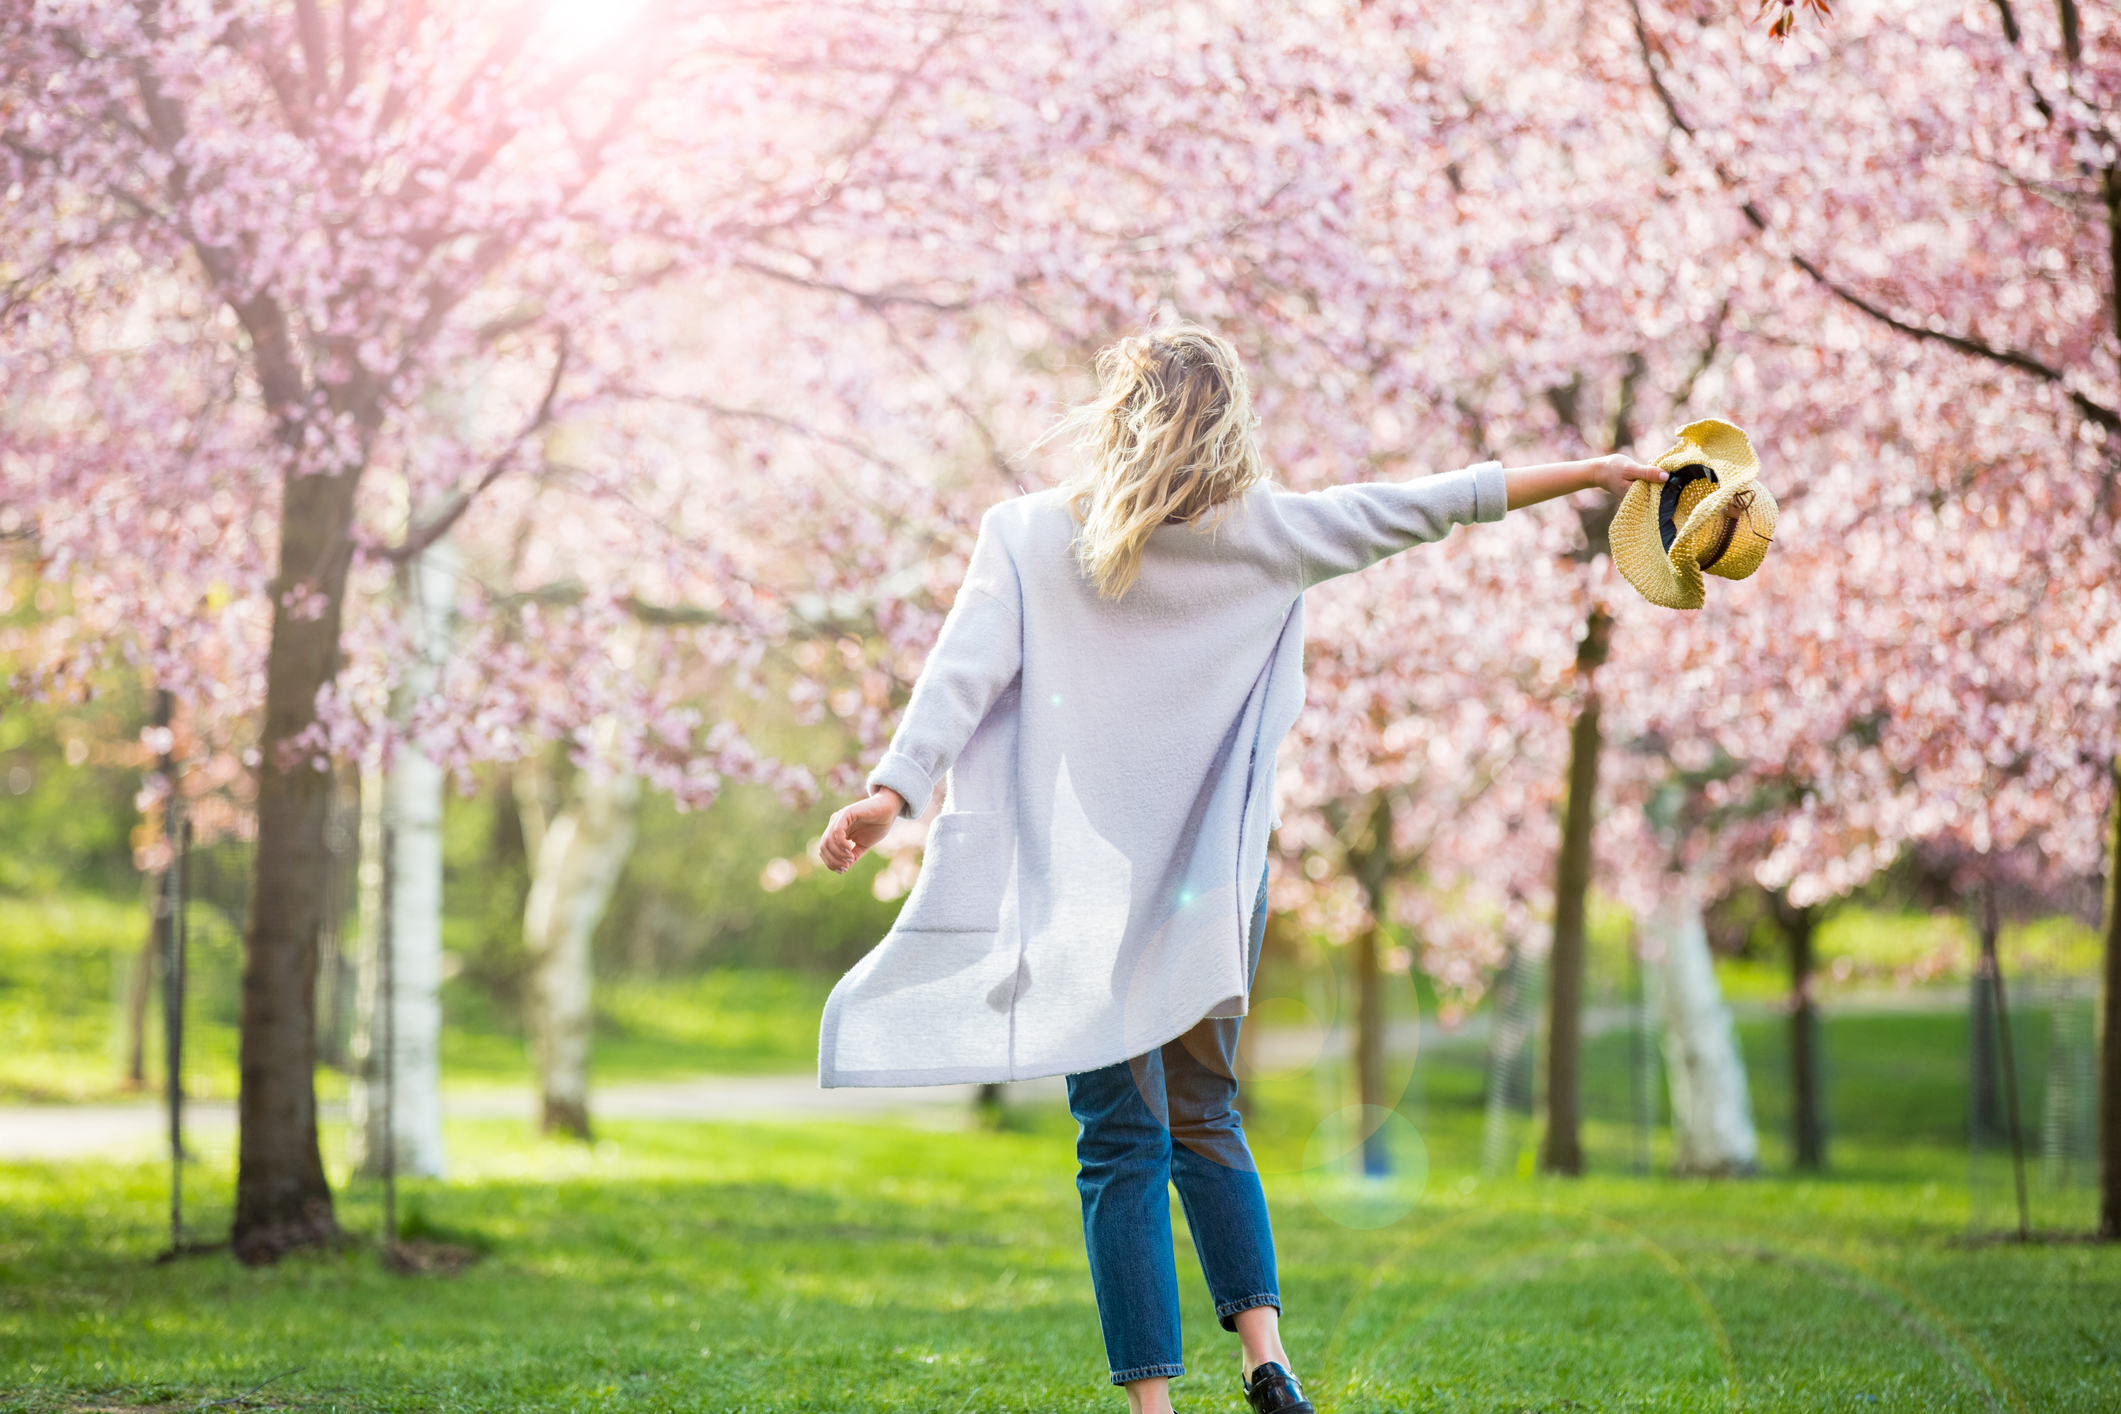 Mix up your daily activities to boost your well-being